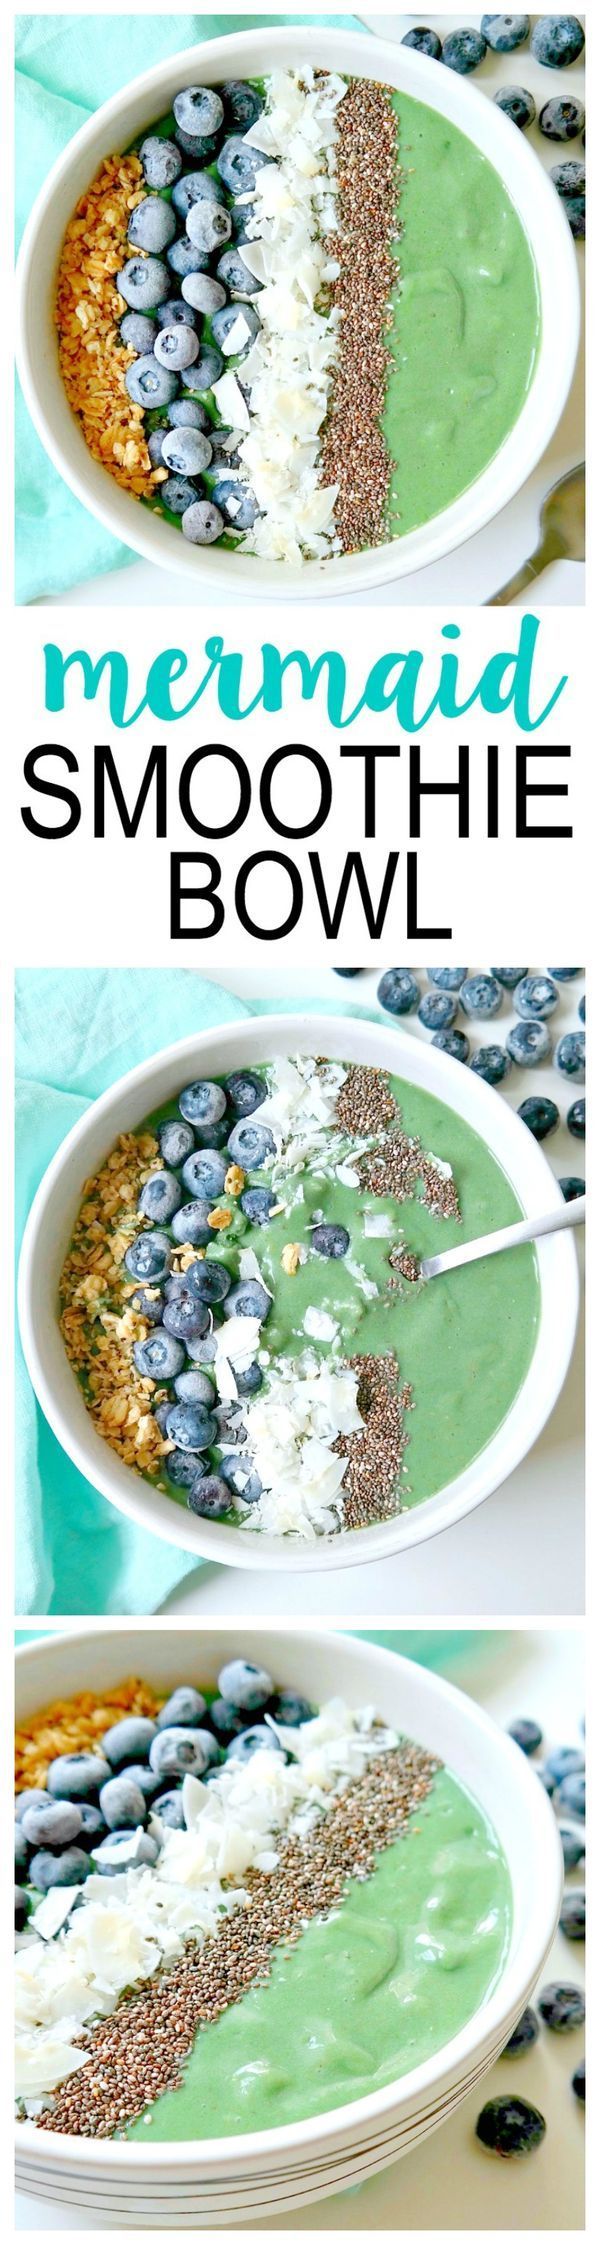 Mermaid Smoothie Bowl. Vegan and Dairy-Free. No added sugar or sweetener, just naturally sweet! Balancing, tasty and healthy with super nourishing ingredients (like spirulina